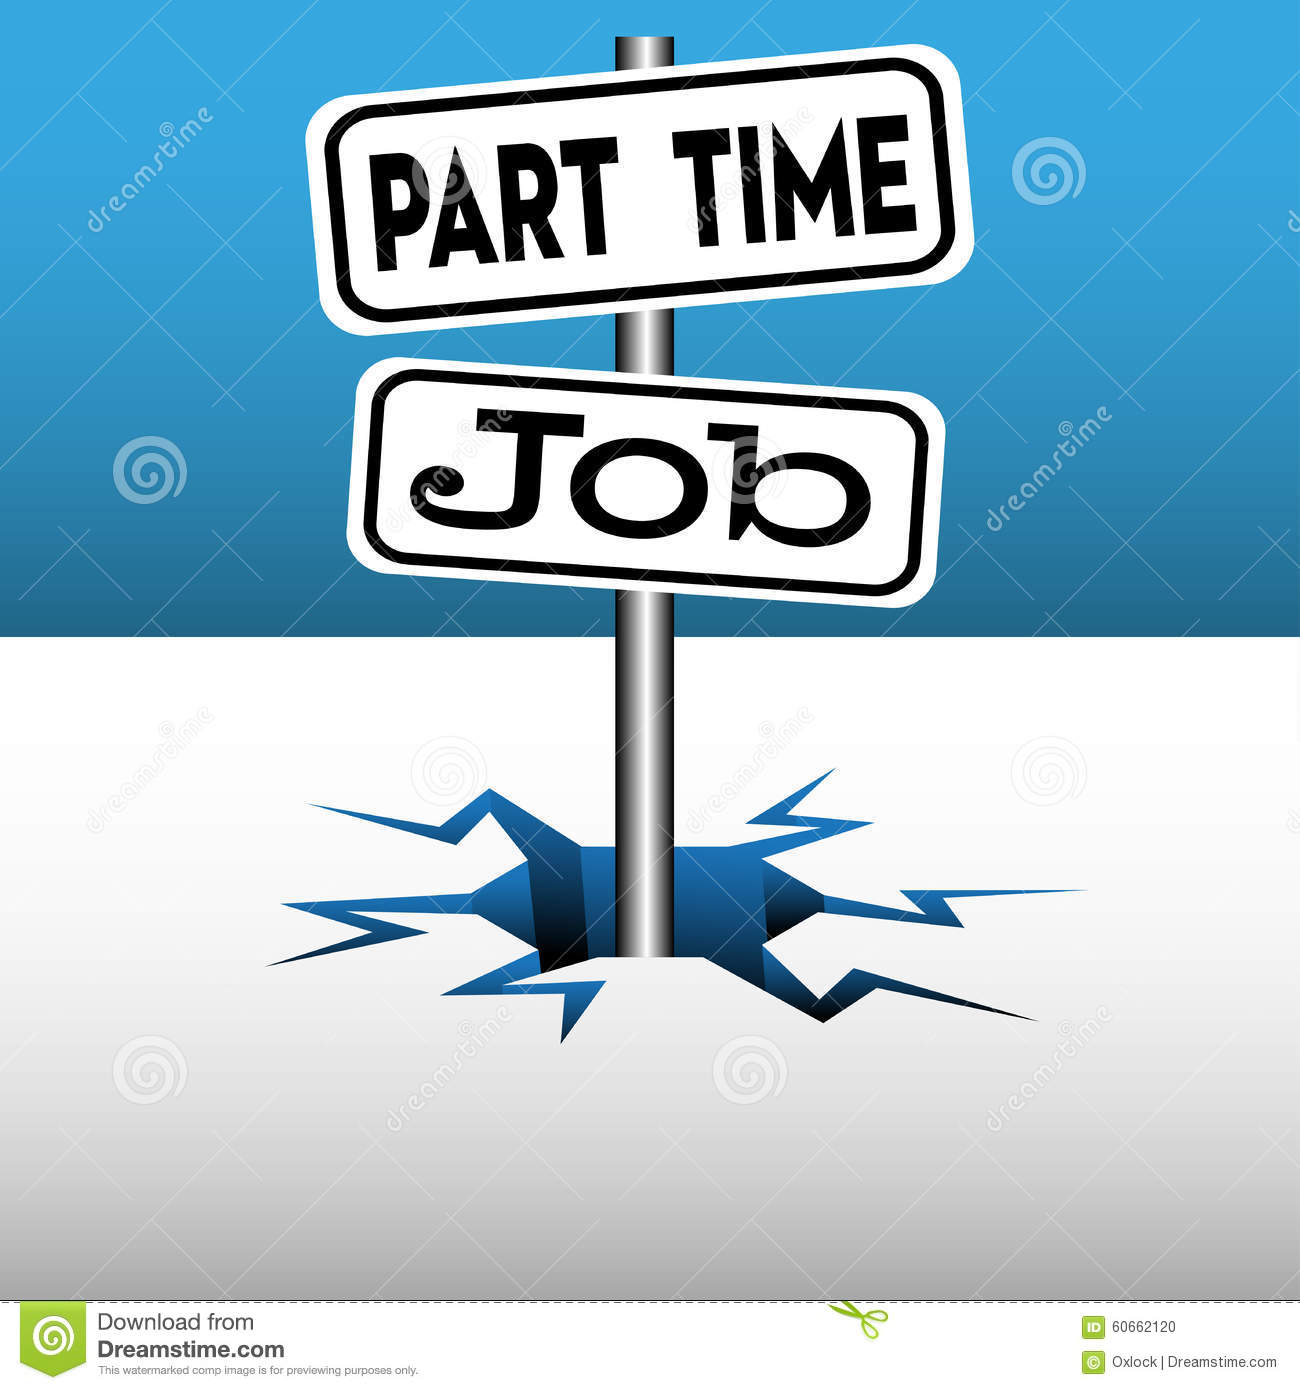 Part Time Job Stock Vector Illustration Of Opportunity